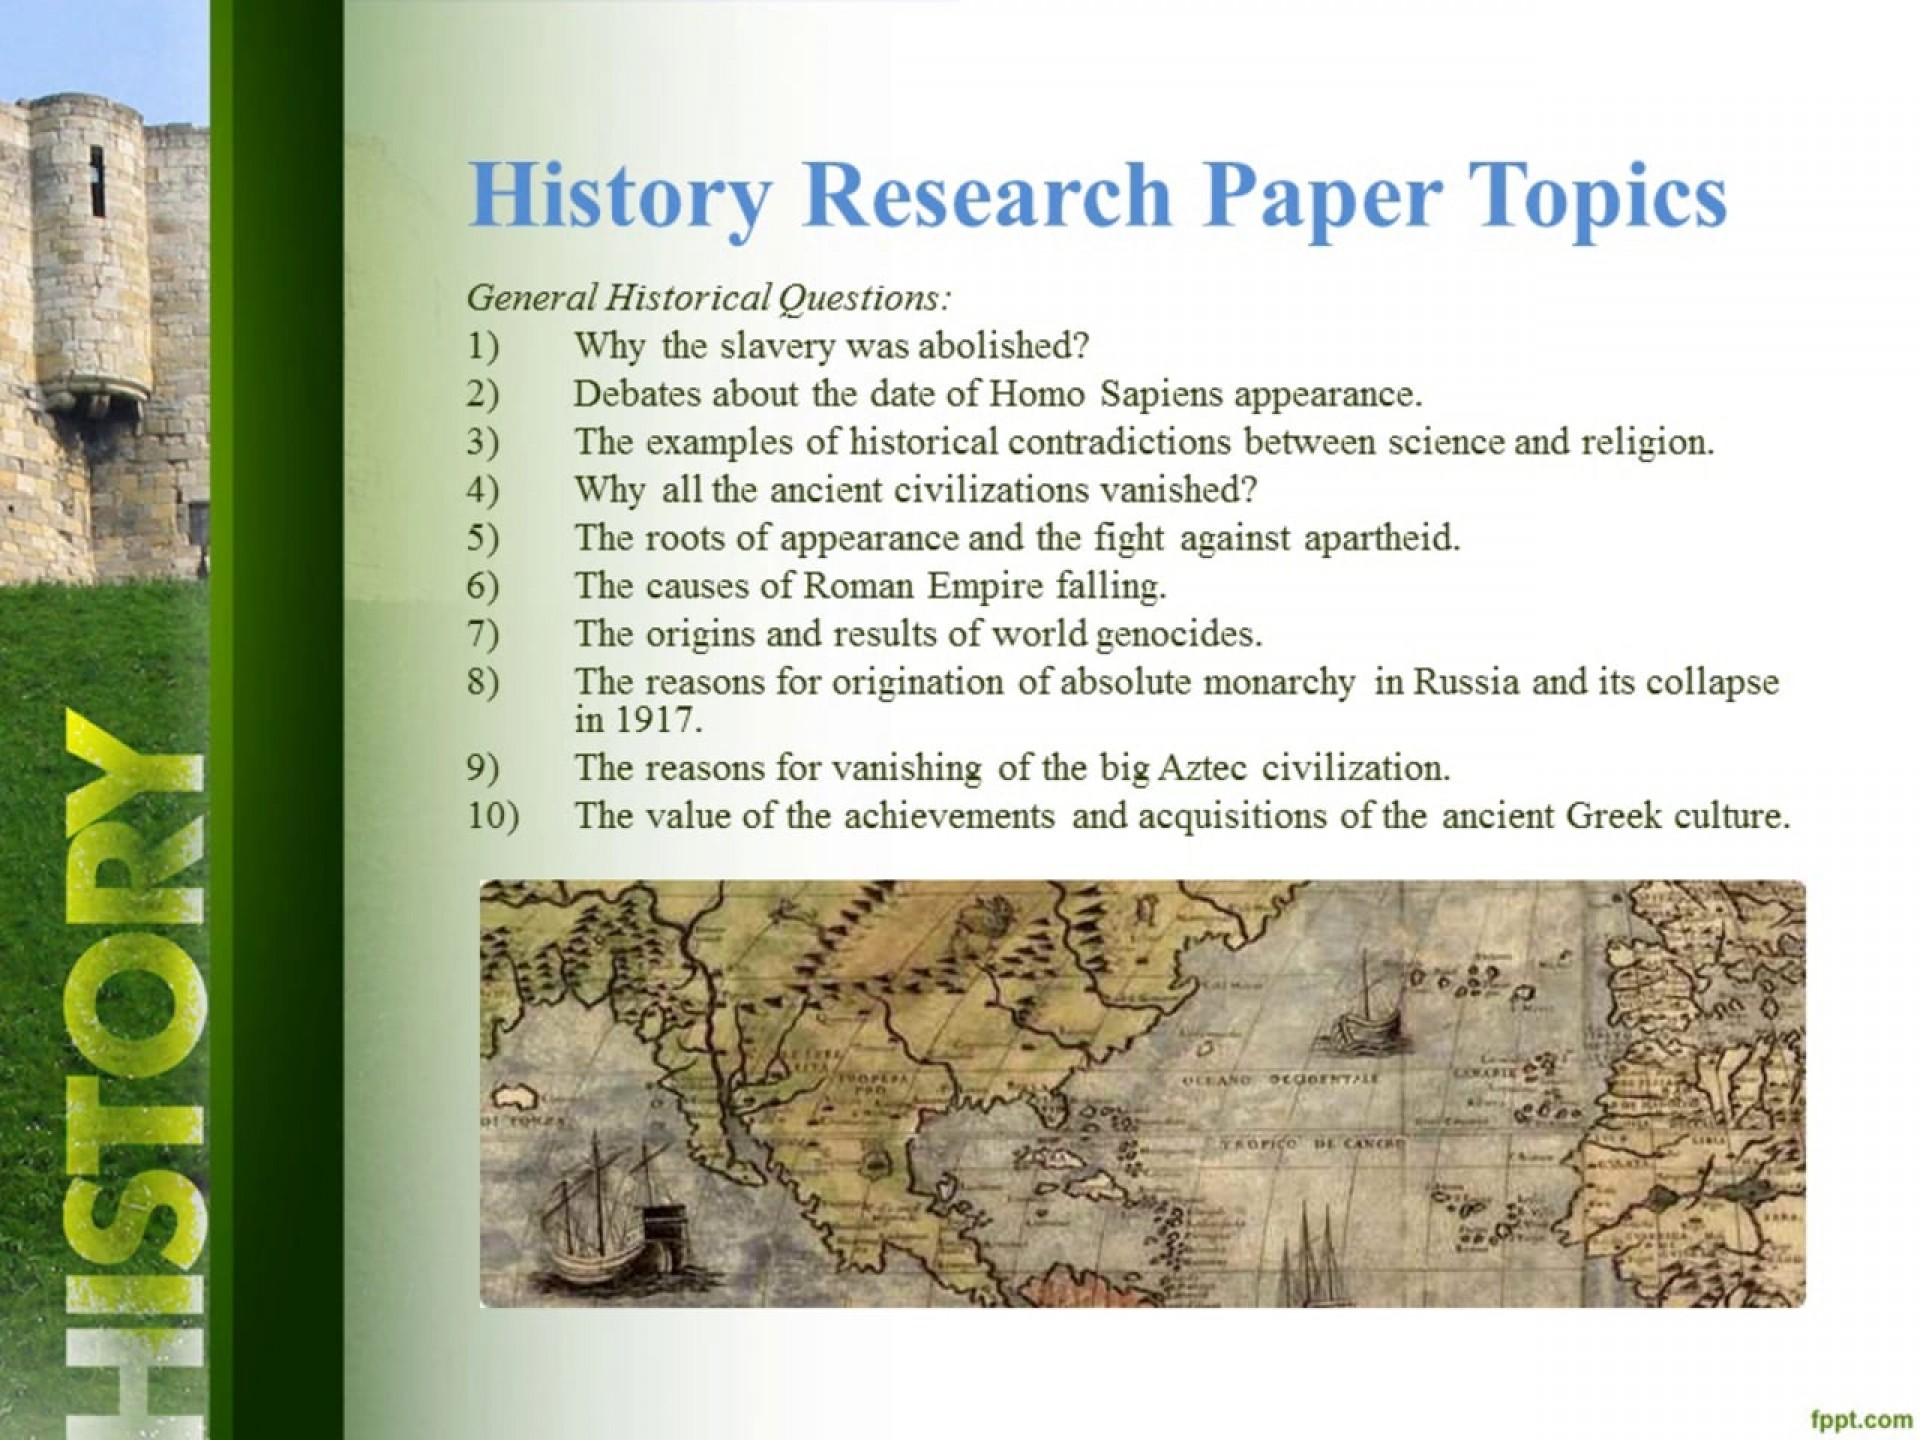 006 American History Research Paper Topics For College Students 530442879 1280x960 Exceptional World 1920